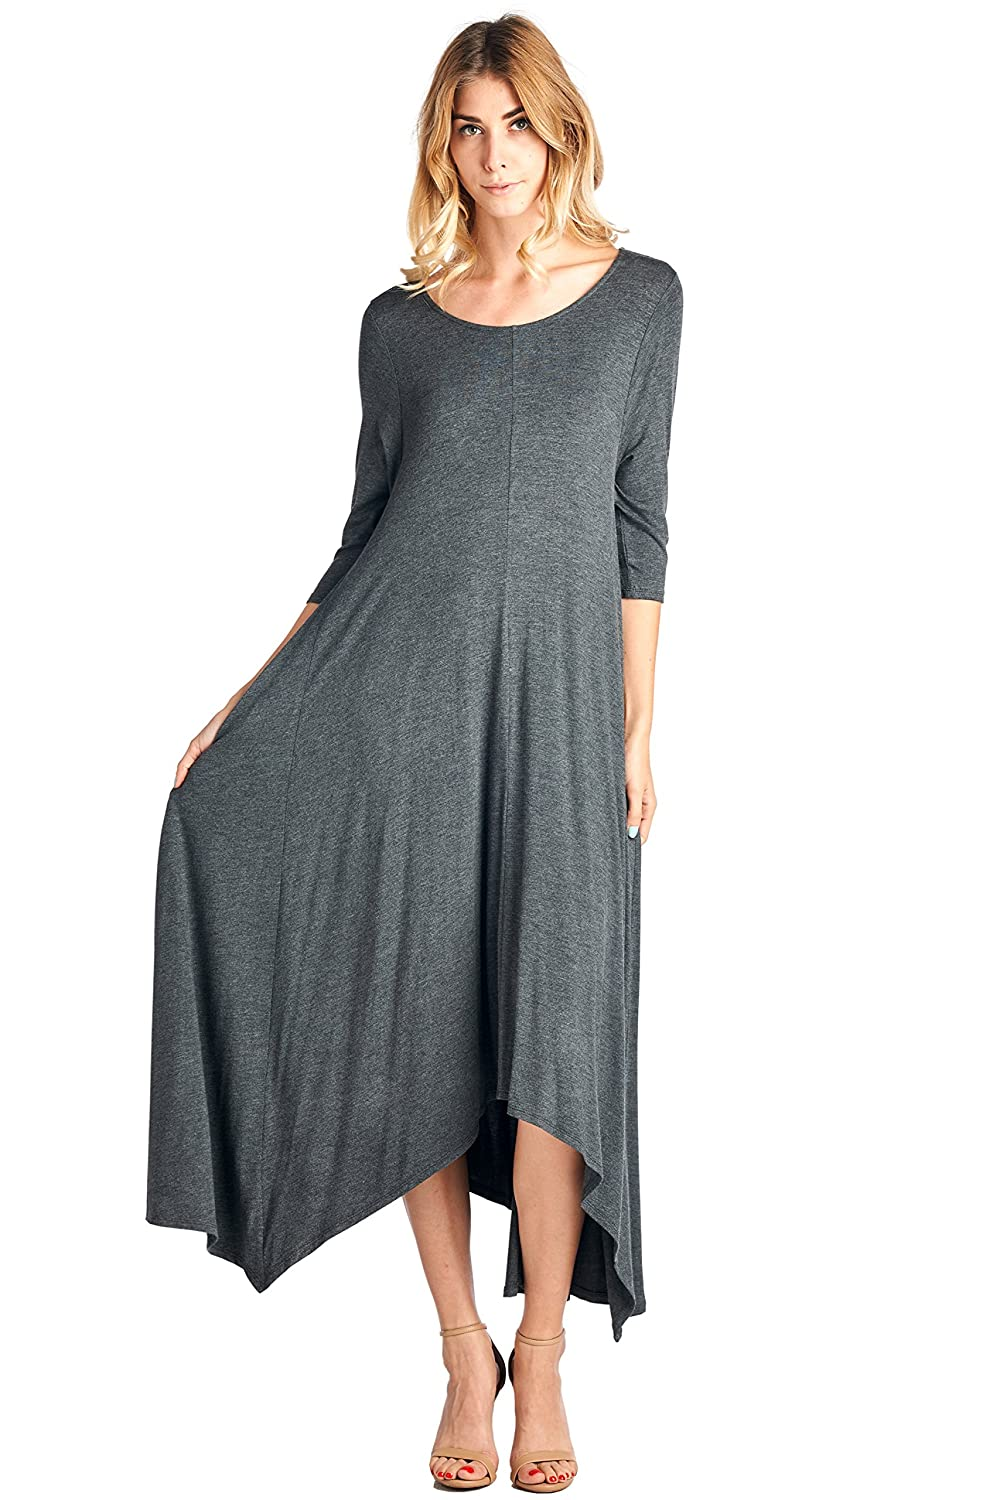 12 Ami Solid 3/4 Sleeve Pocket Loose Maxi Dress (S-3X) - Made in USA